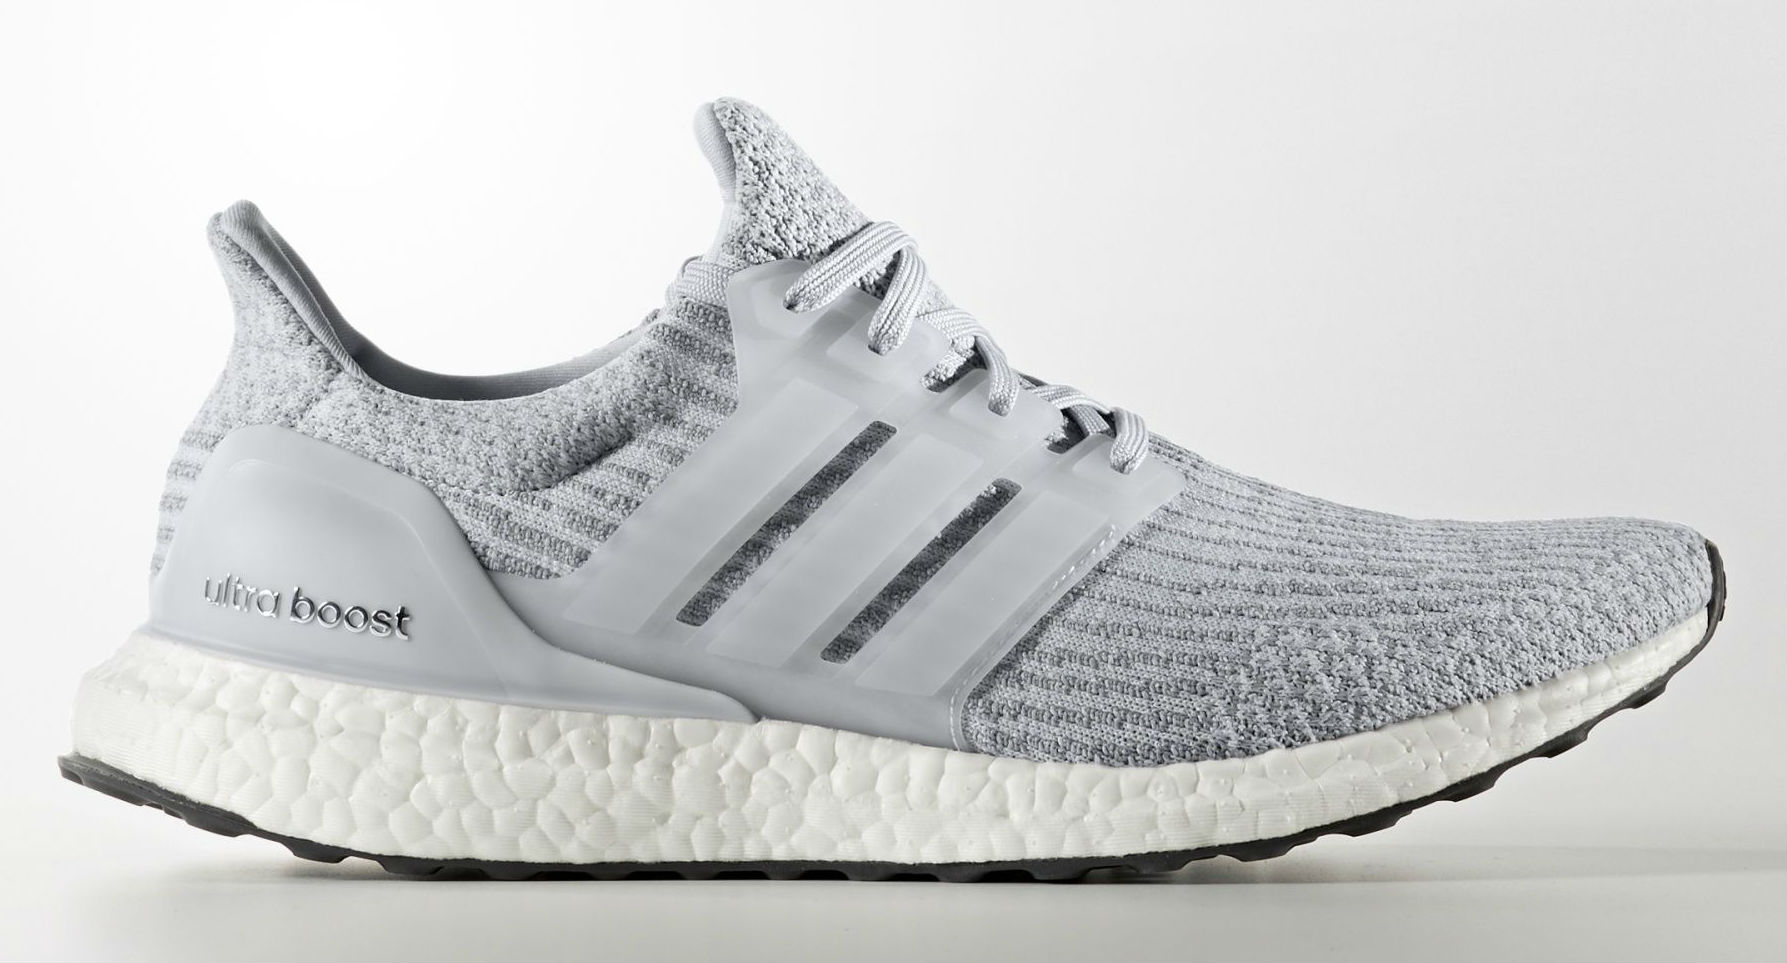 A New Look for the adidas Ultra Boost Next Year 81502464f